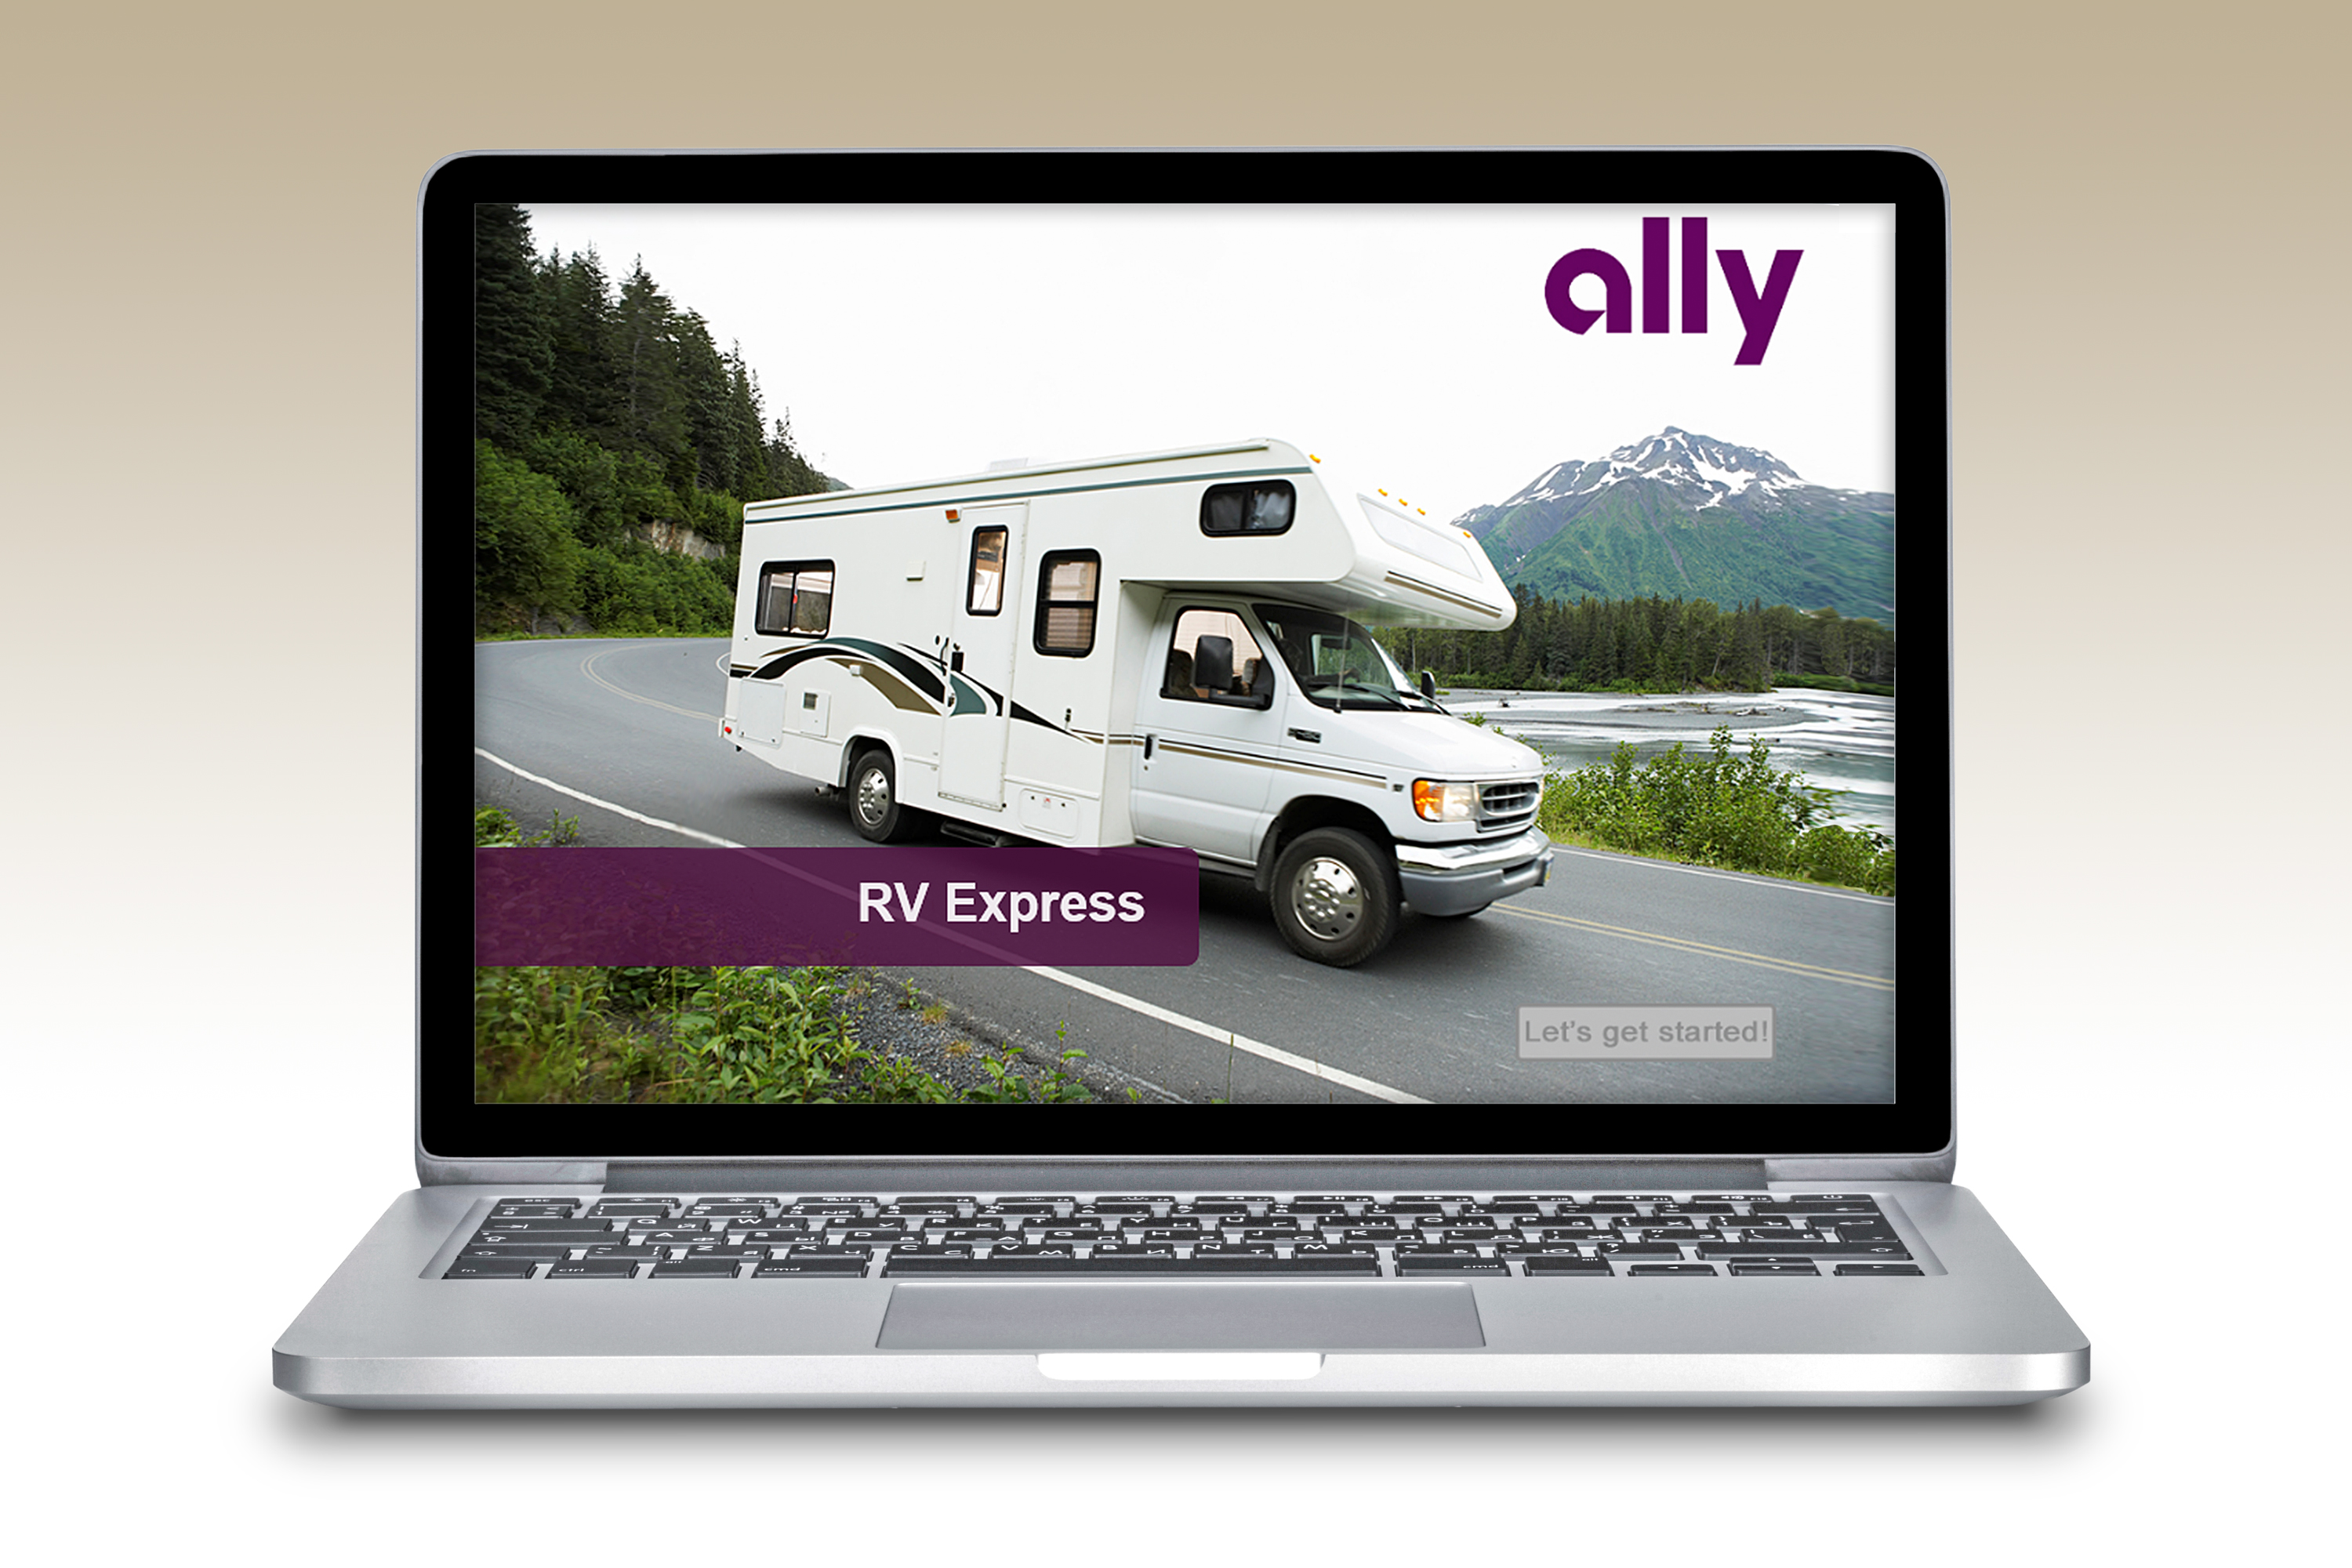 Images | Ally Financial